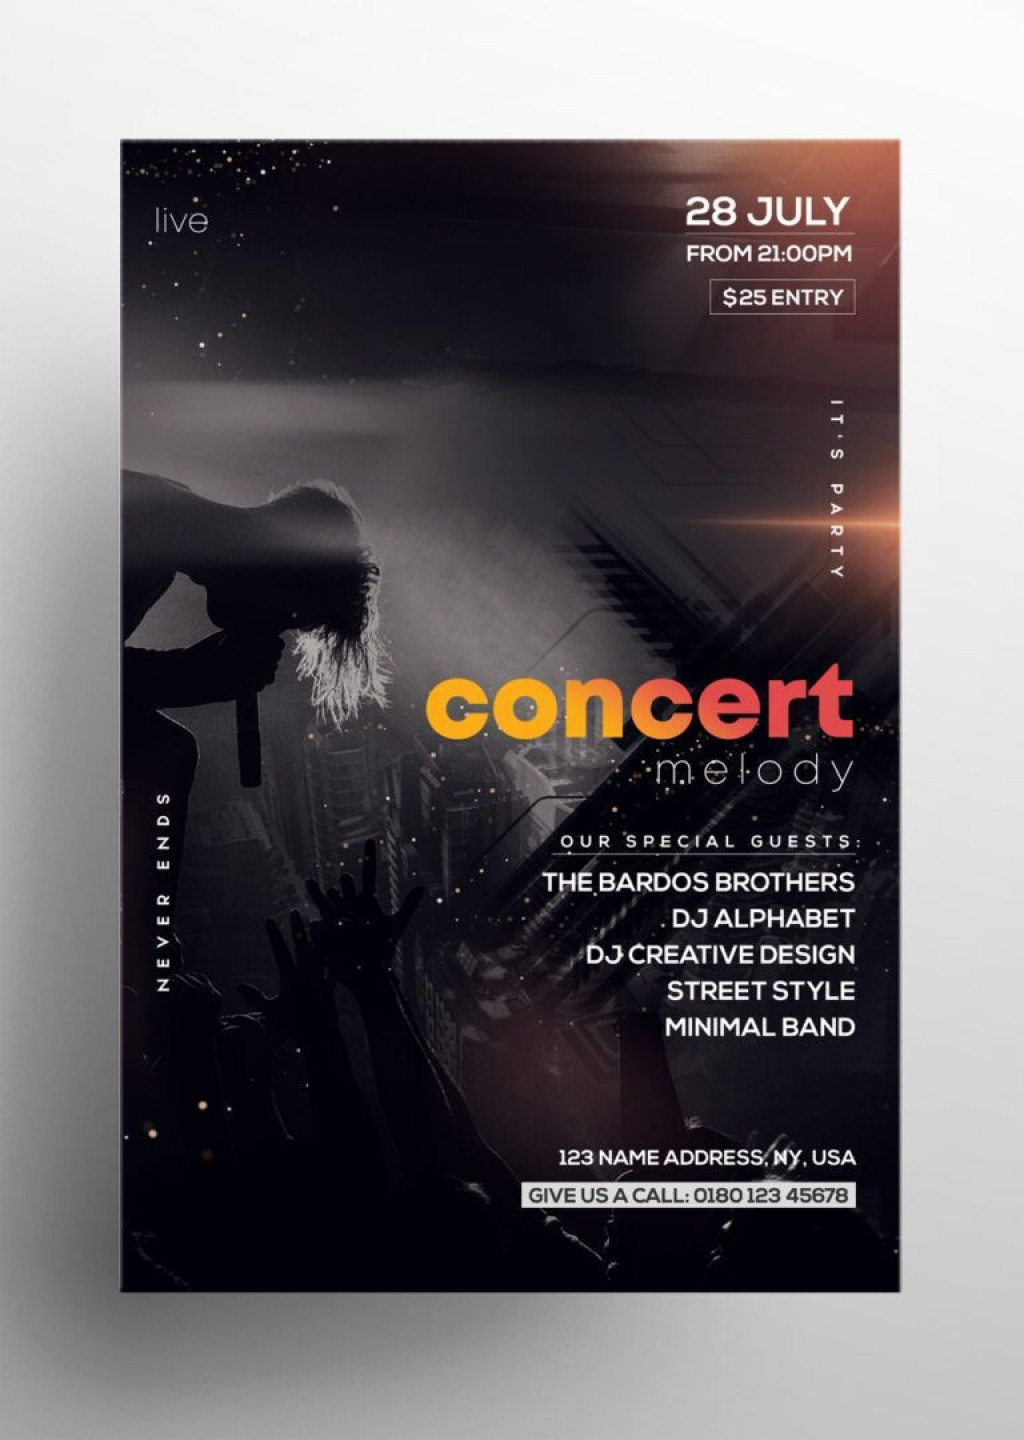 000 Unforgettable Free Concert Poster Template Highest Clarity  Rock Psd Christma PhotoshopLarge